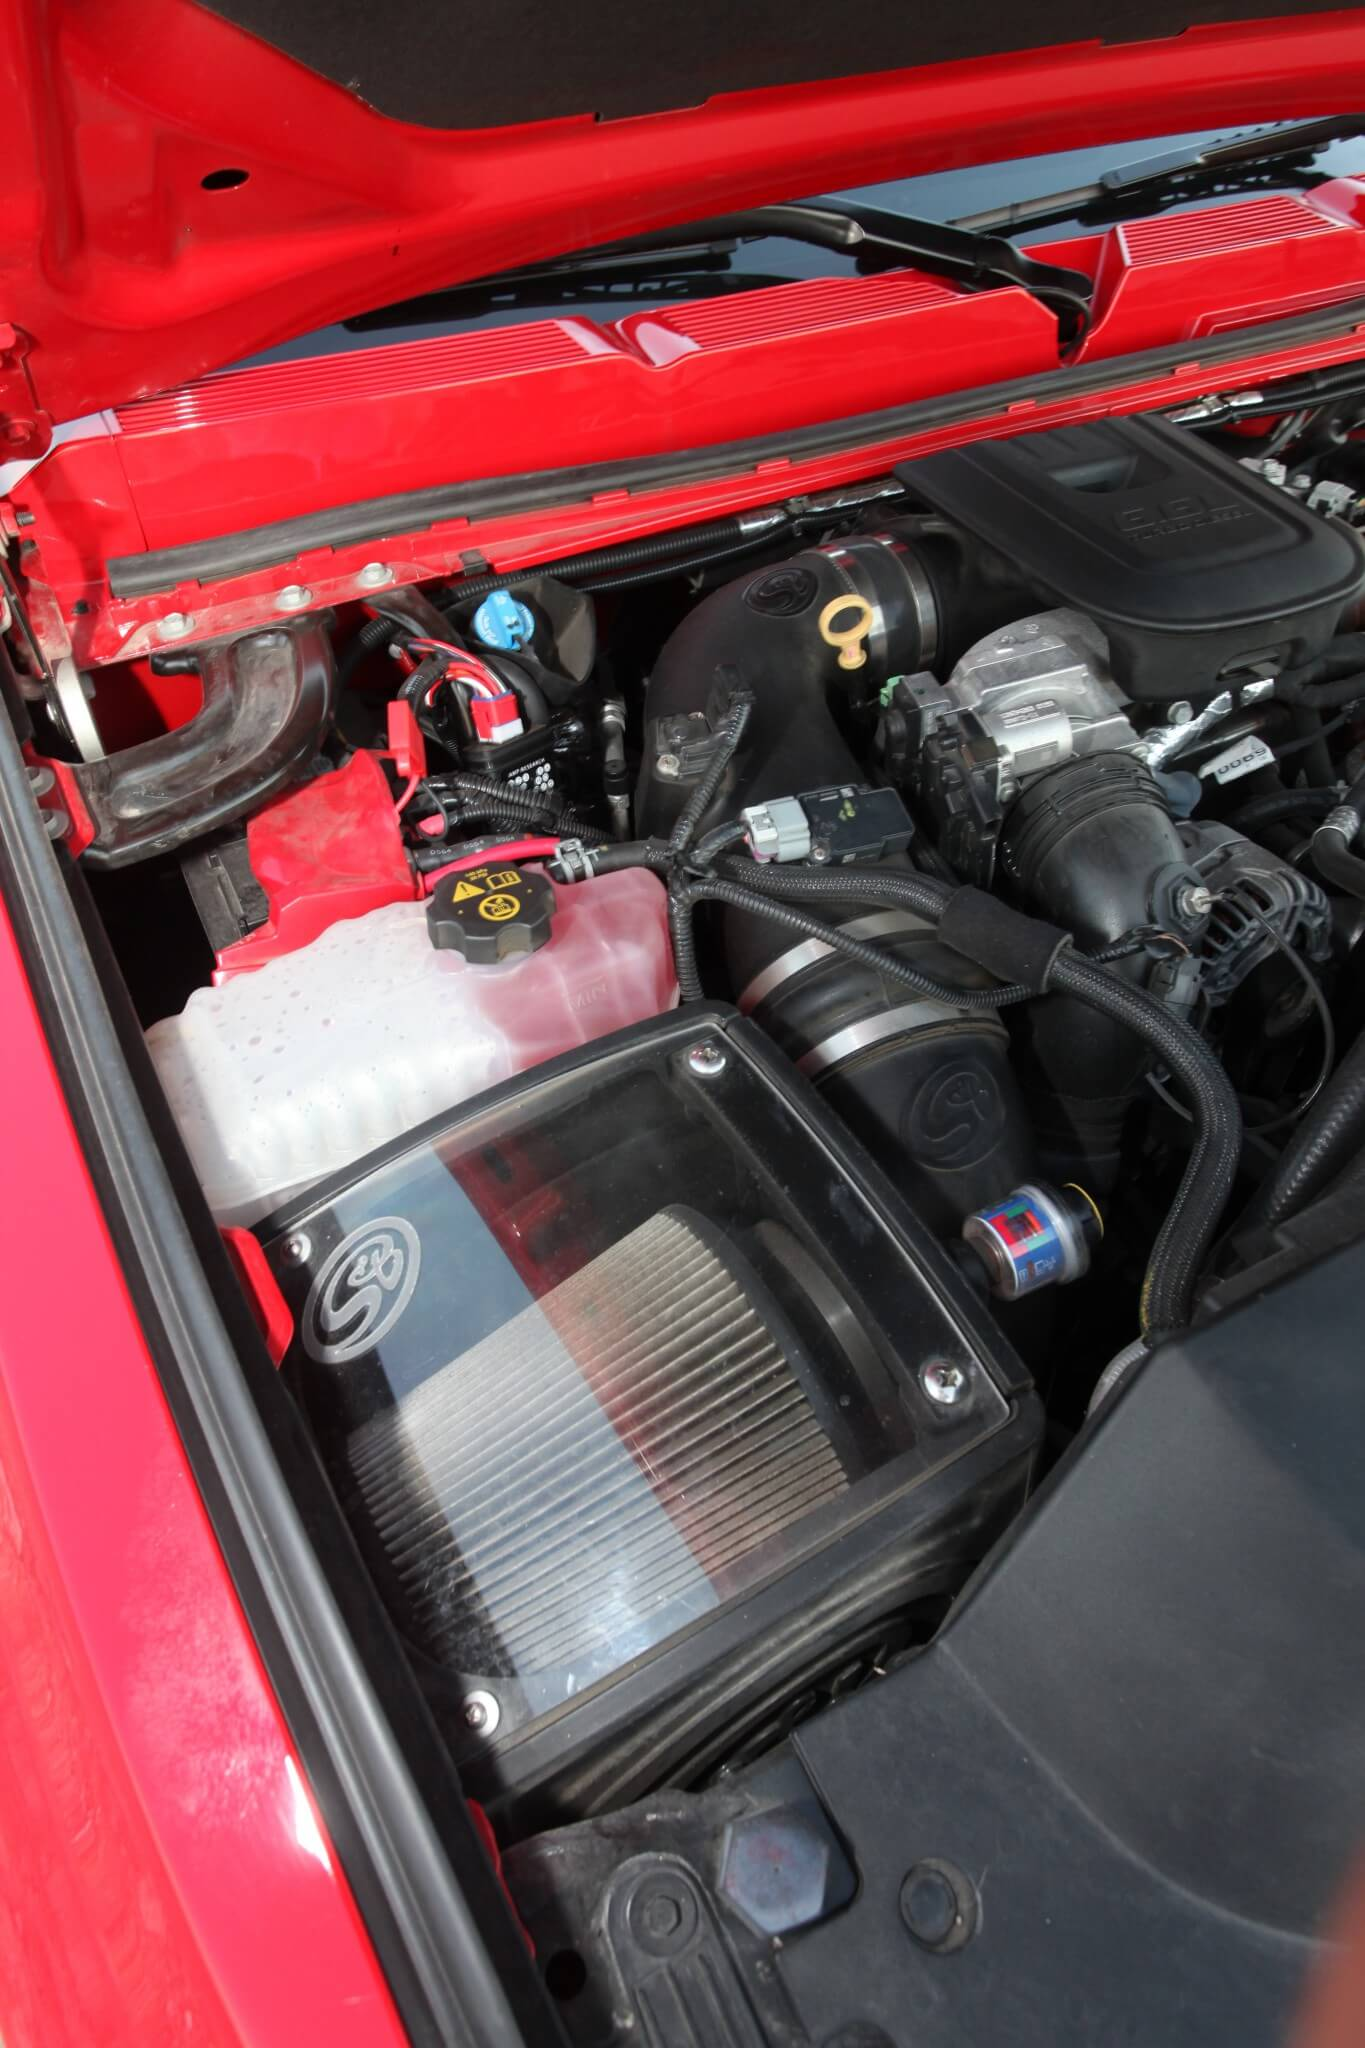 An S&B cold air intake and air filter make sure that clean air is not a problem.